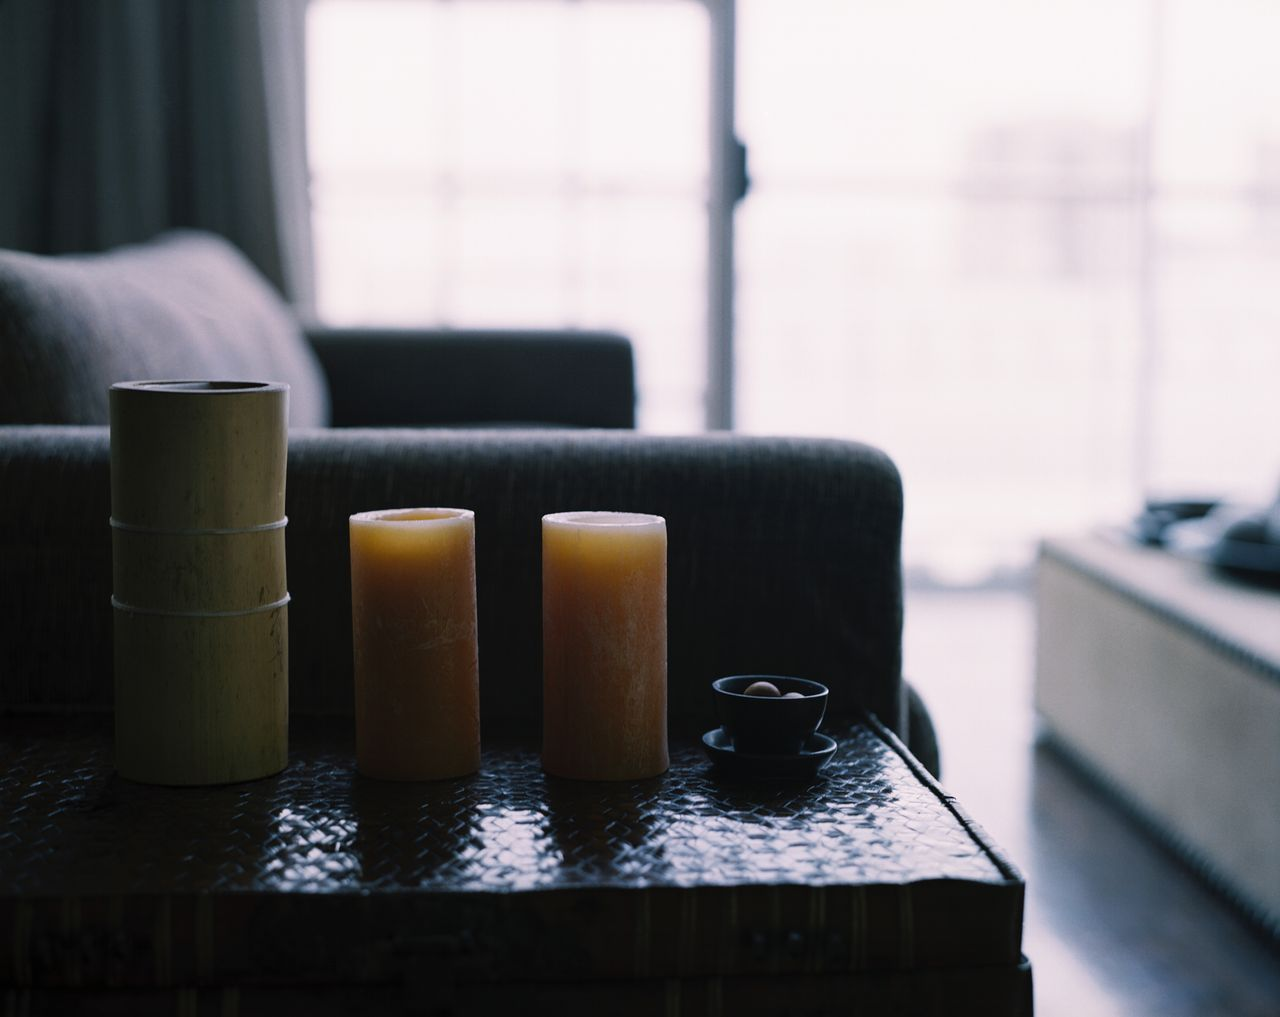 close-up of an array of decorative candles kept on a side table in a living room